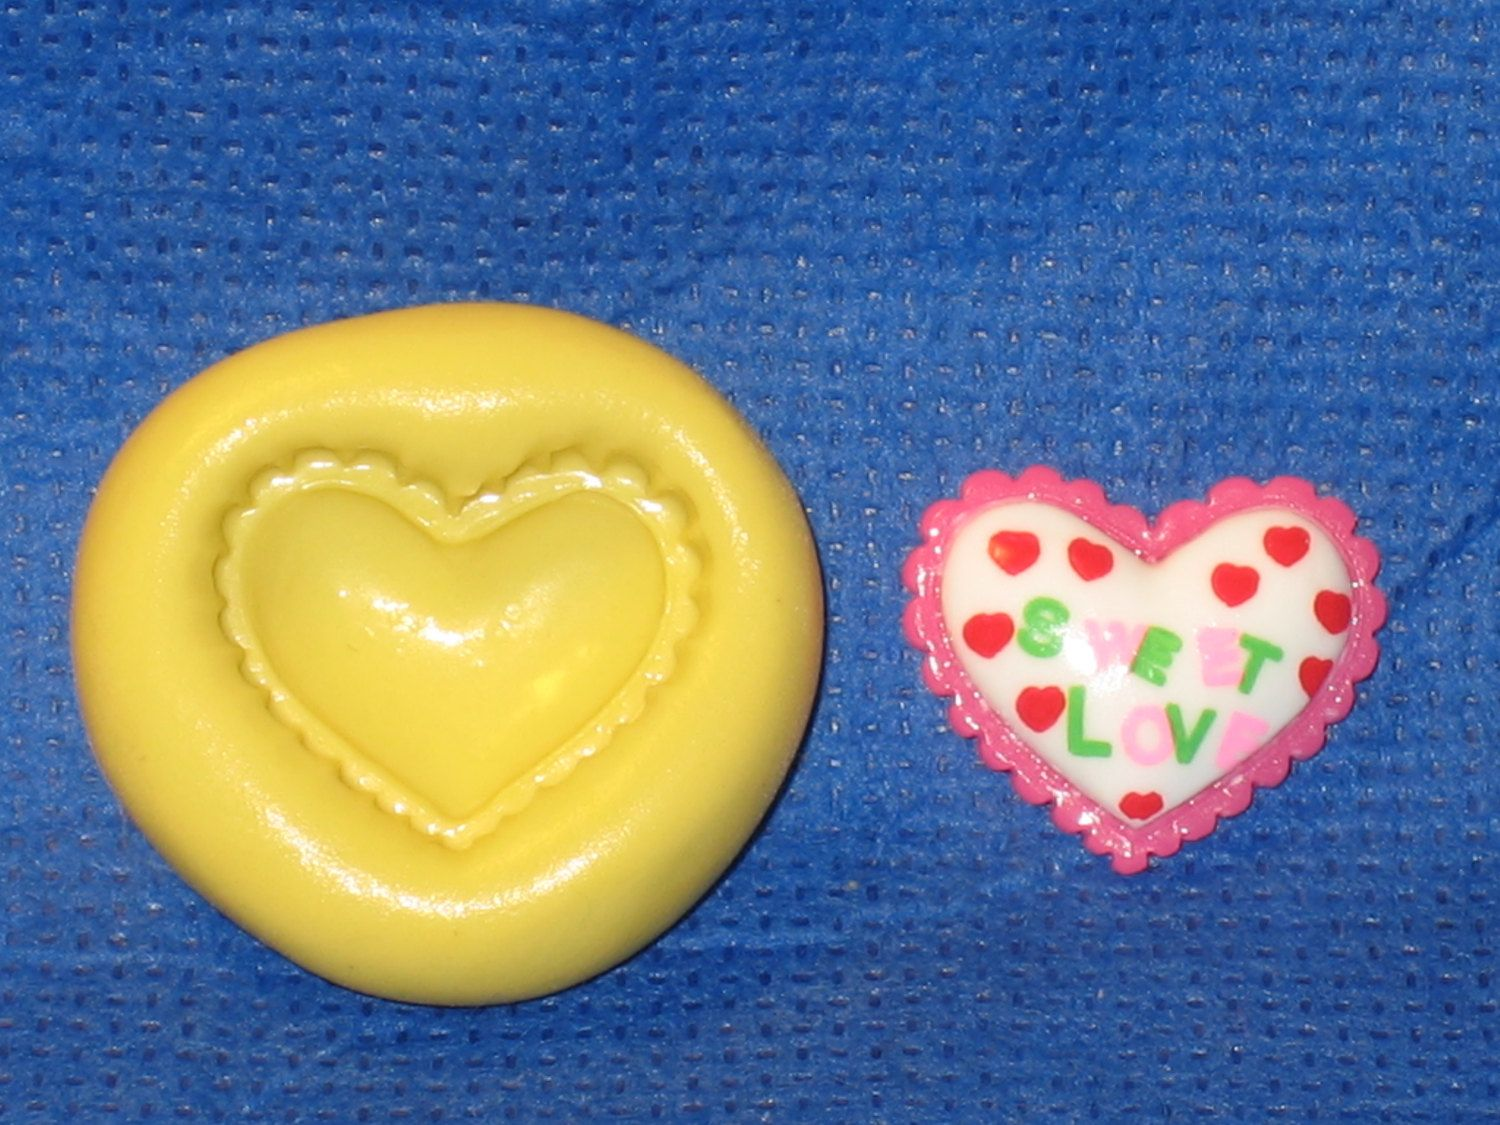 Heart Silicone  Mold 589 For Resin Clay Candy Chocolate Fondant Cakr Pop Dec